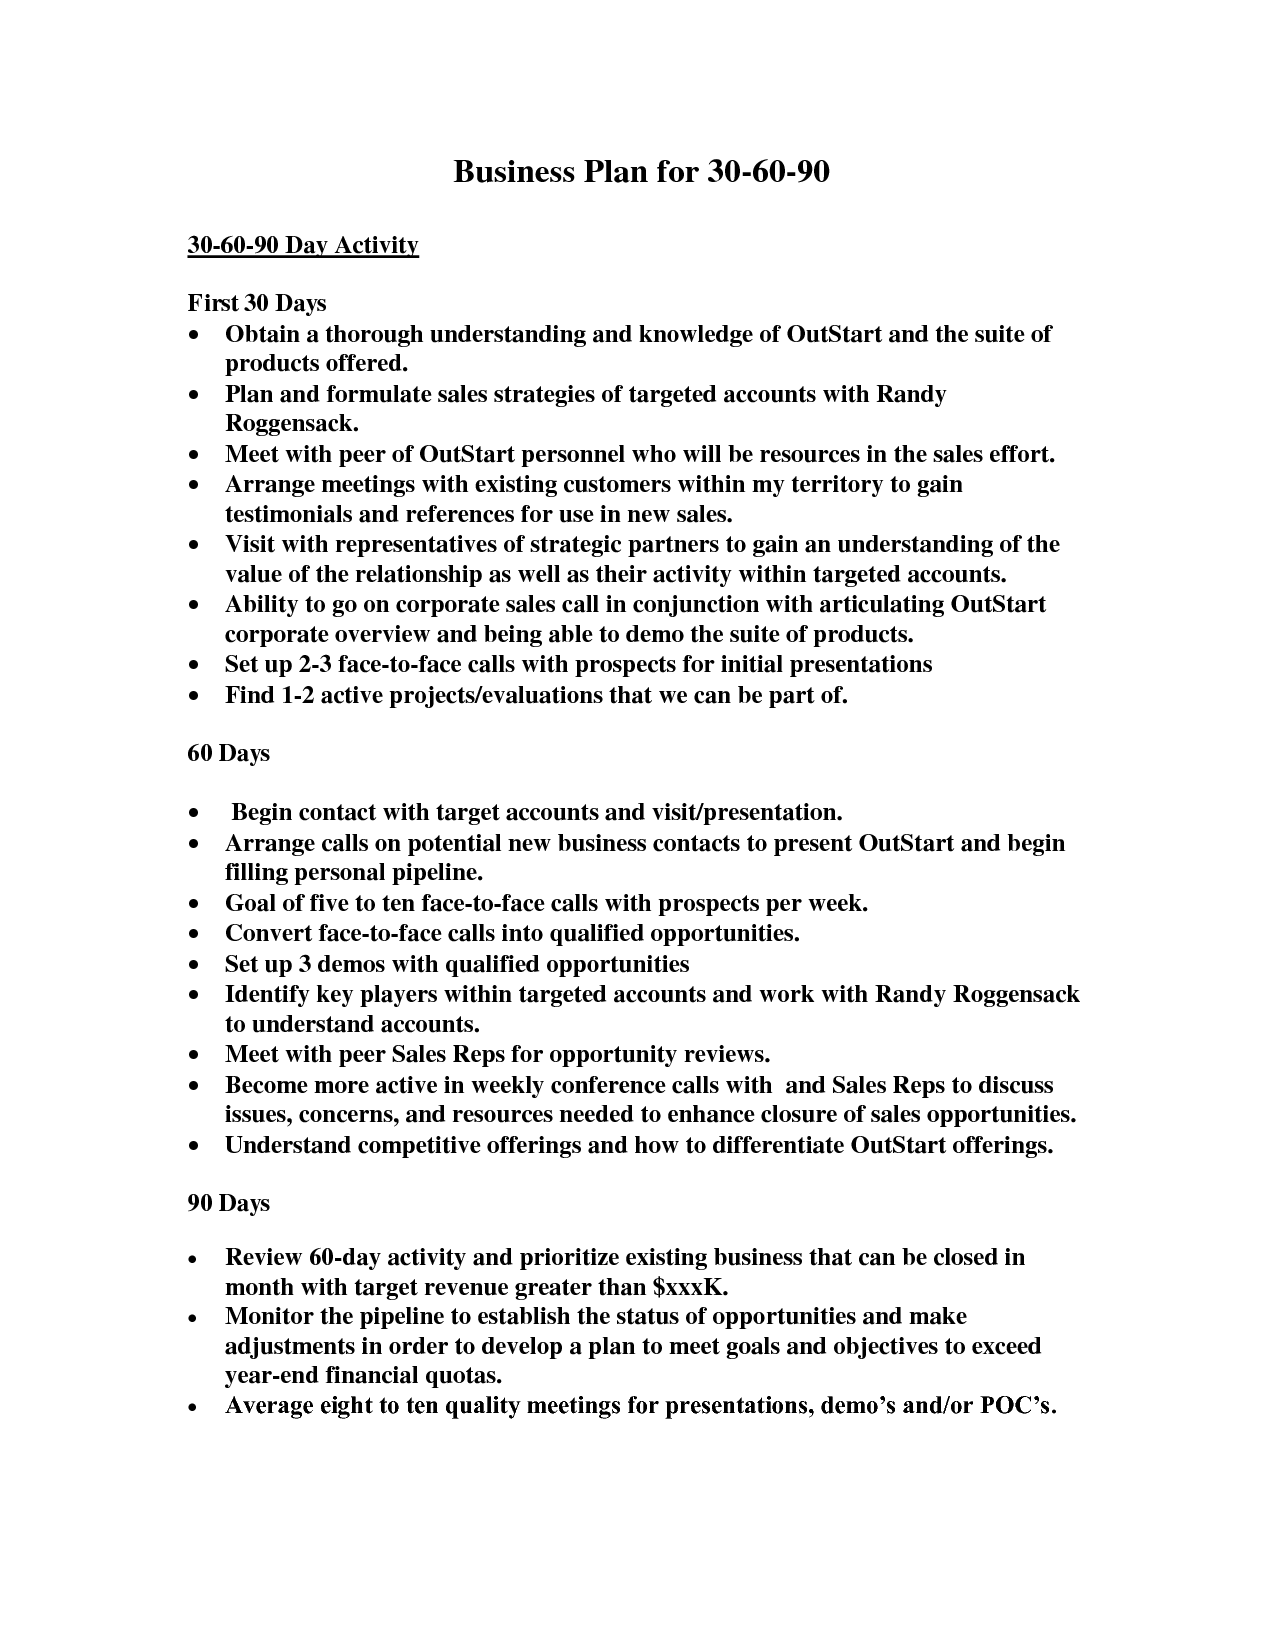 Business Plan For NDJBp Day Business - Business plan for interview template